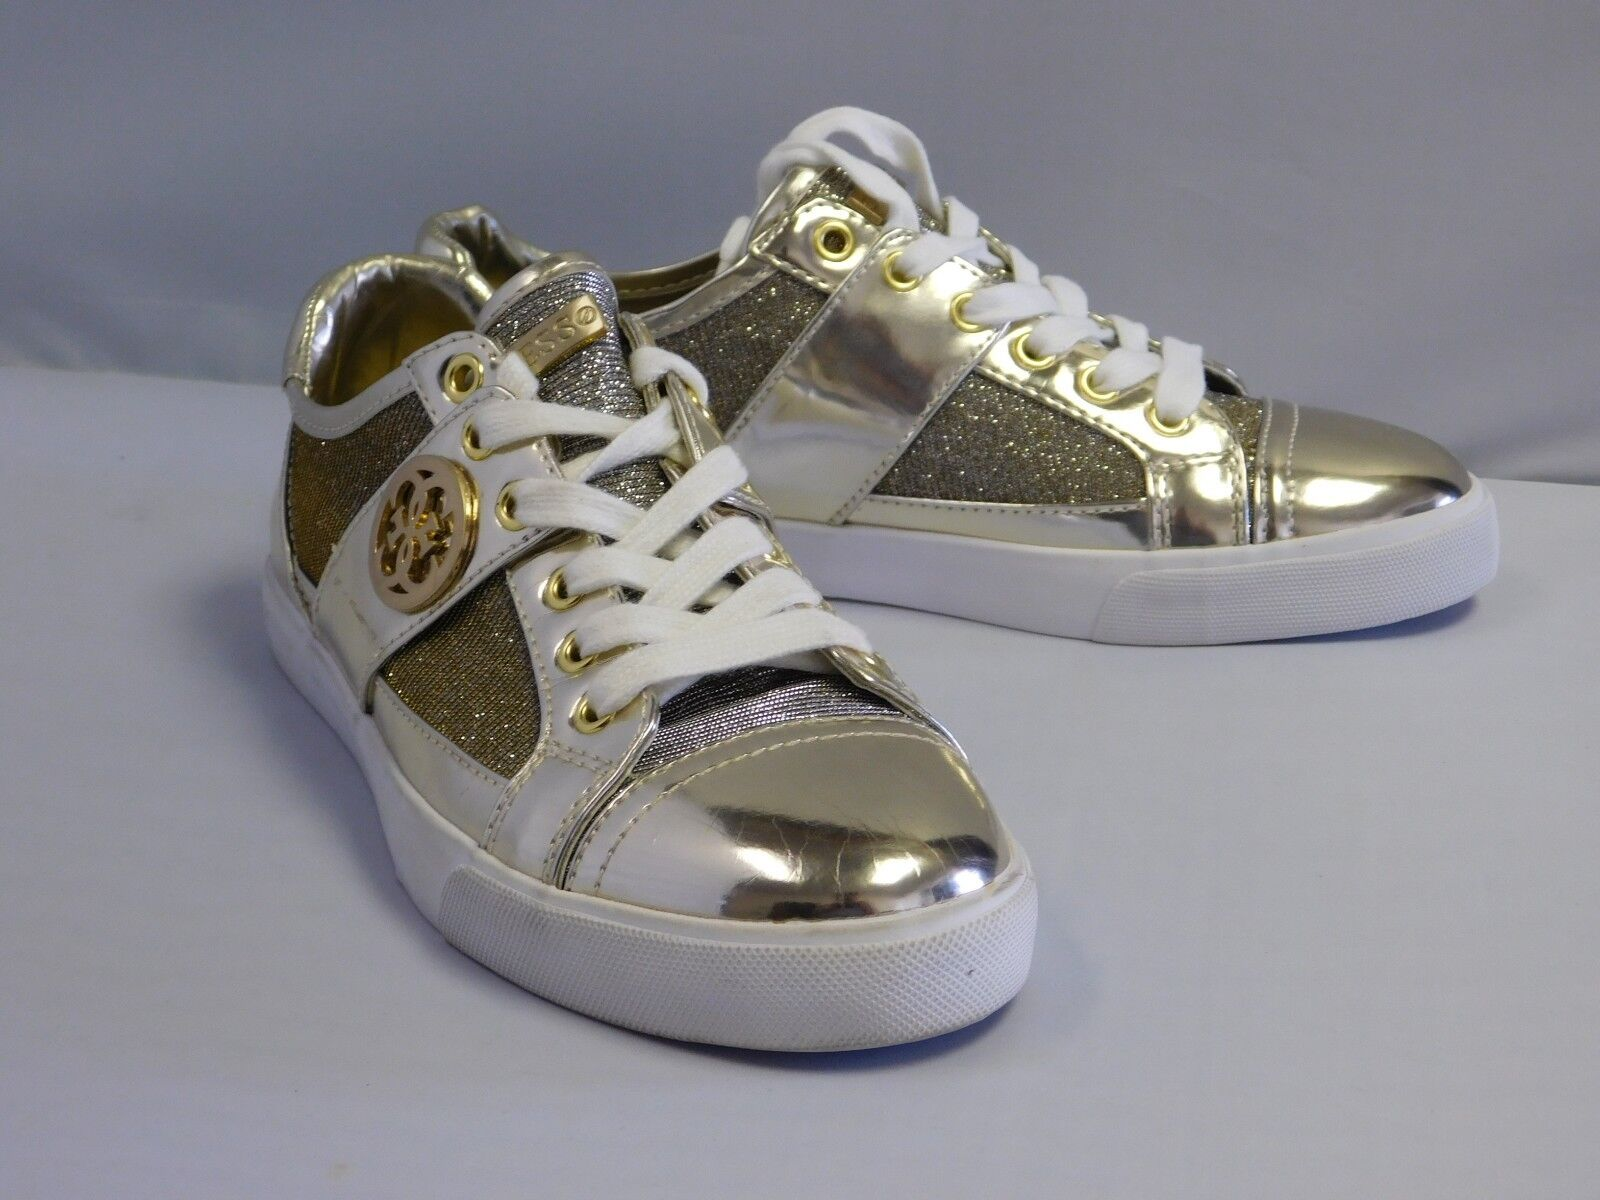 Guess Macby 3 Damens Round Toe Synthetic Gold Sneakers, 6M